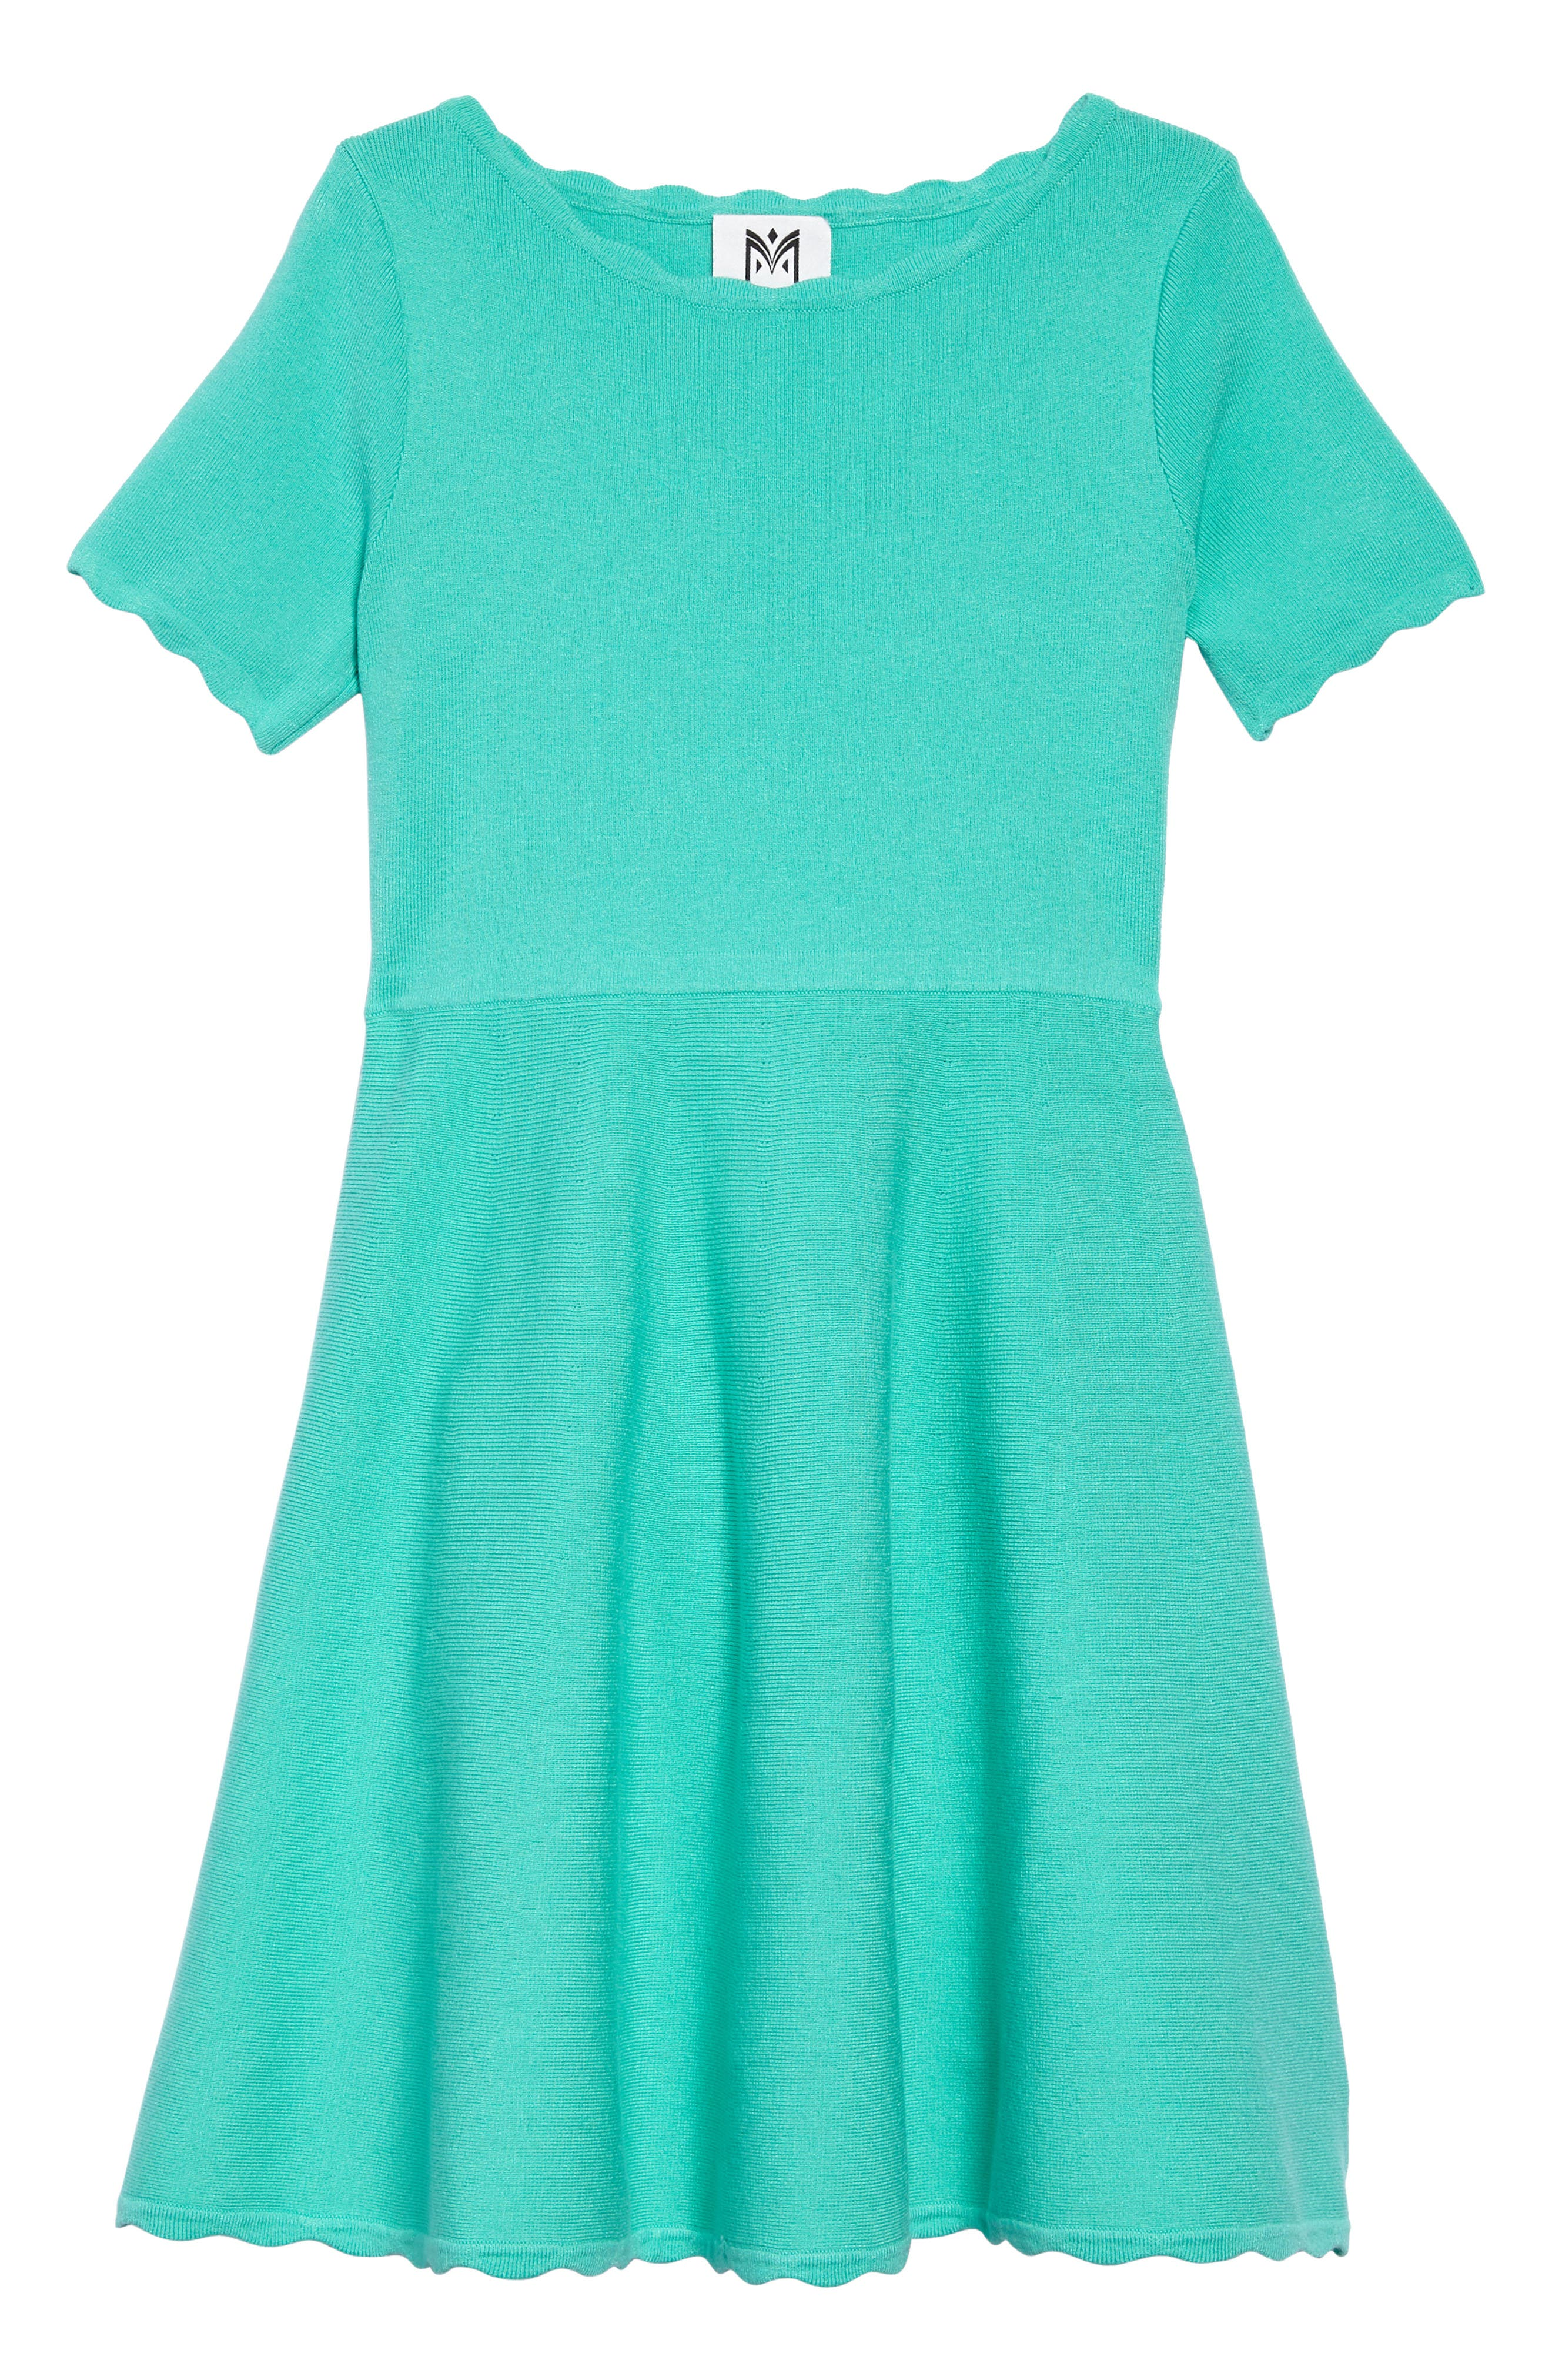 Milly Minis Scallop Edge Fit & Flare Dress (Big Girls)